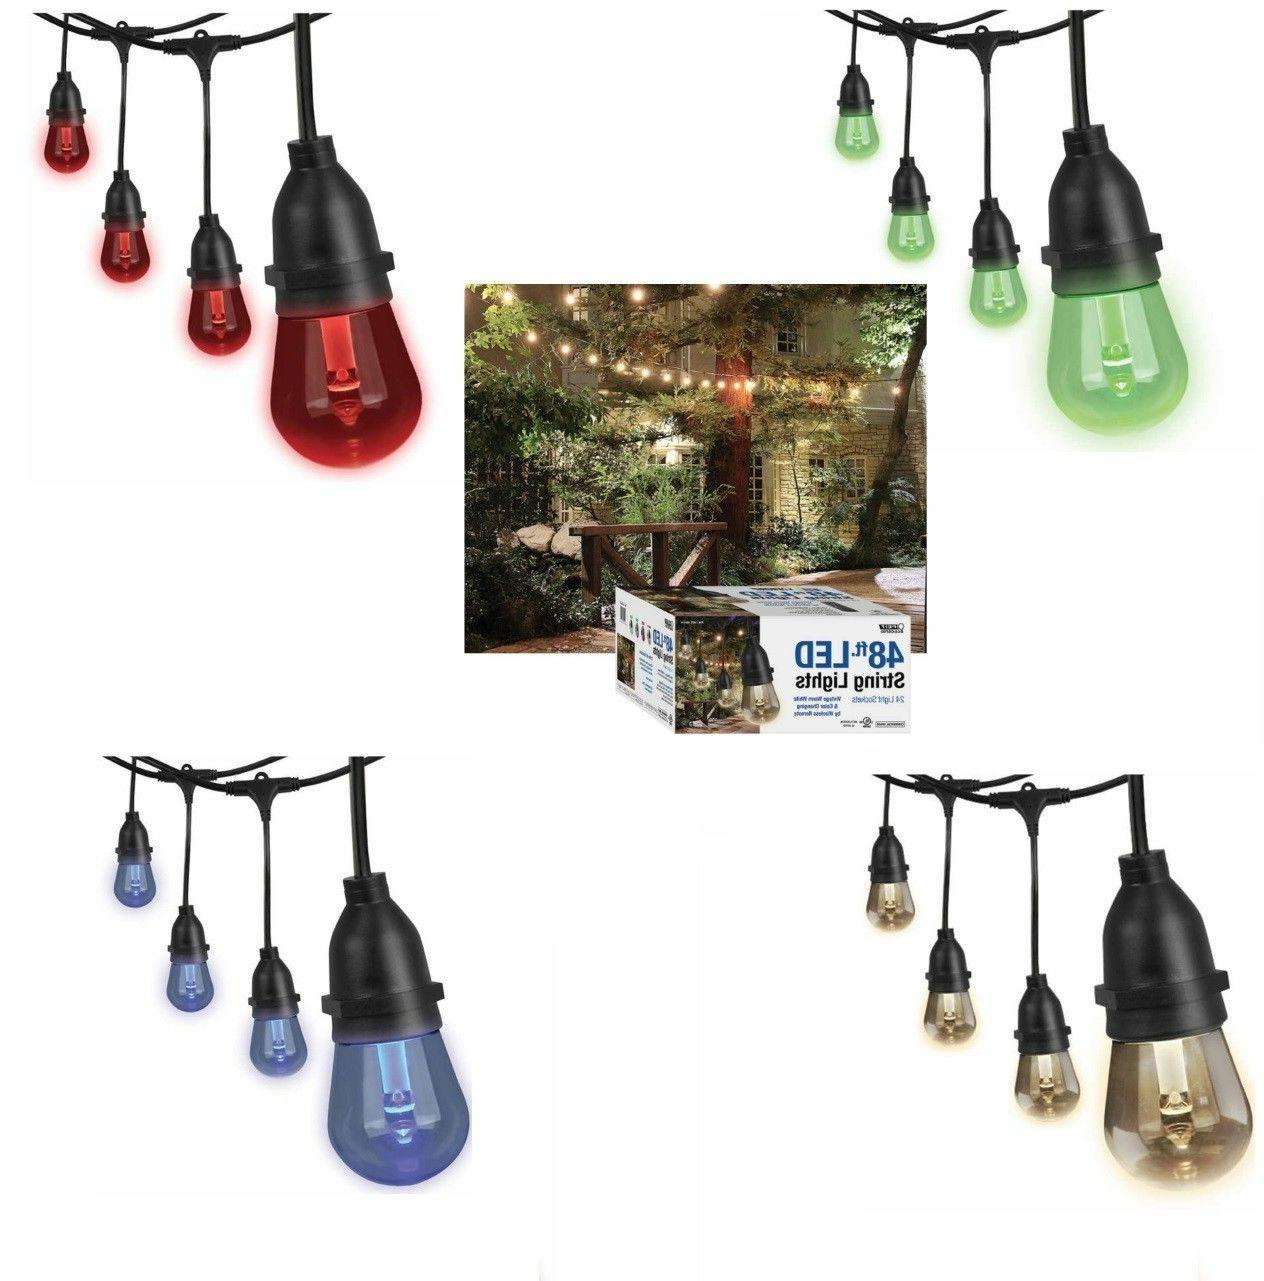 Feit Outdoor String Lights Not Working: Feit 48ft 24 LED RGB Outdoor Weatherproof Color